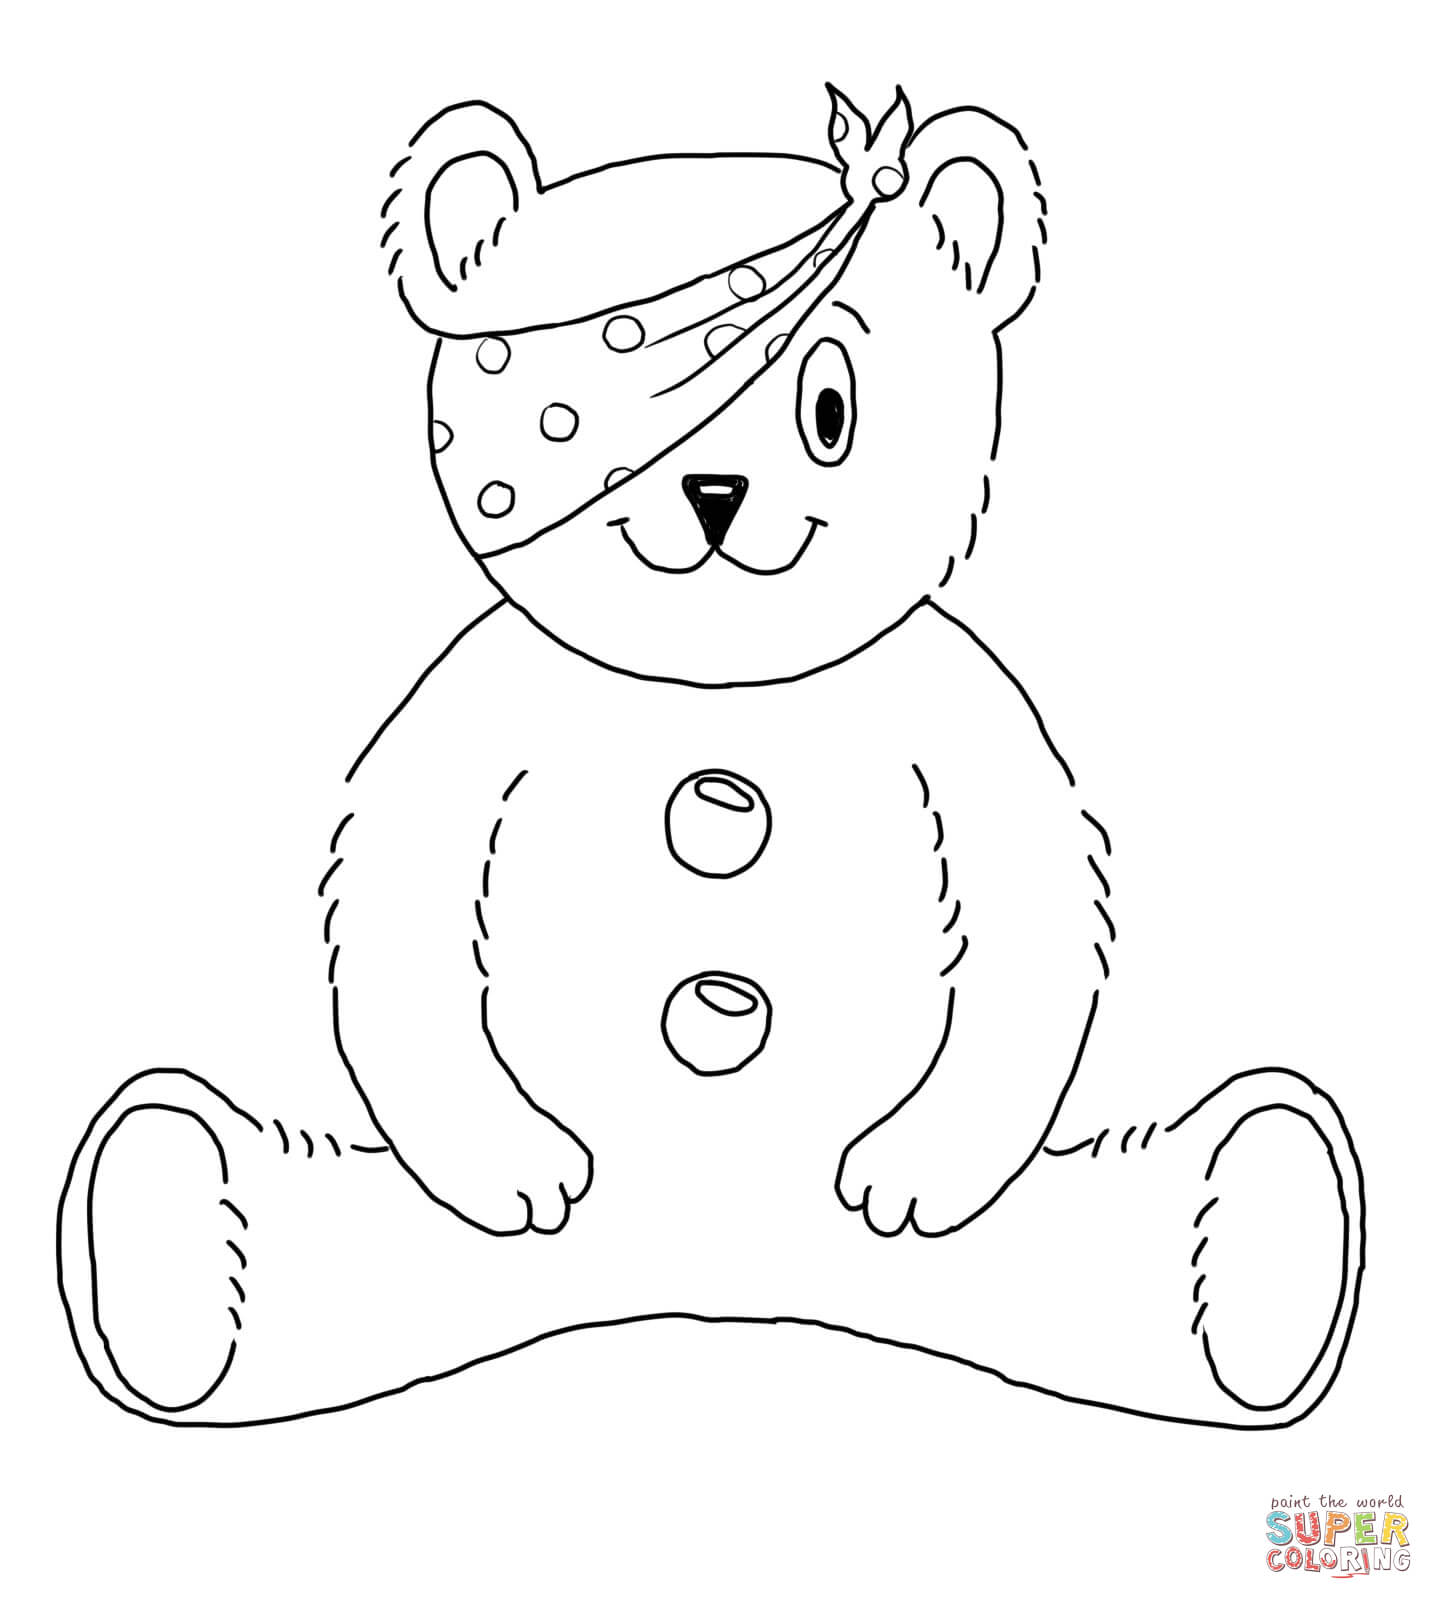 pudsey bear colouring 10 best pudsey colouring sheets images on pinterest bear bear colouring pudsey